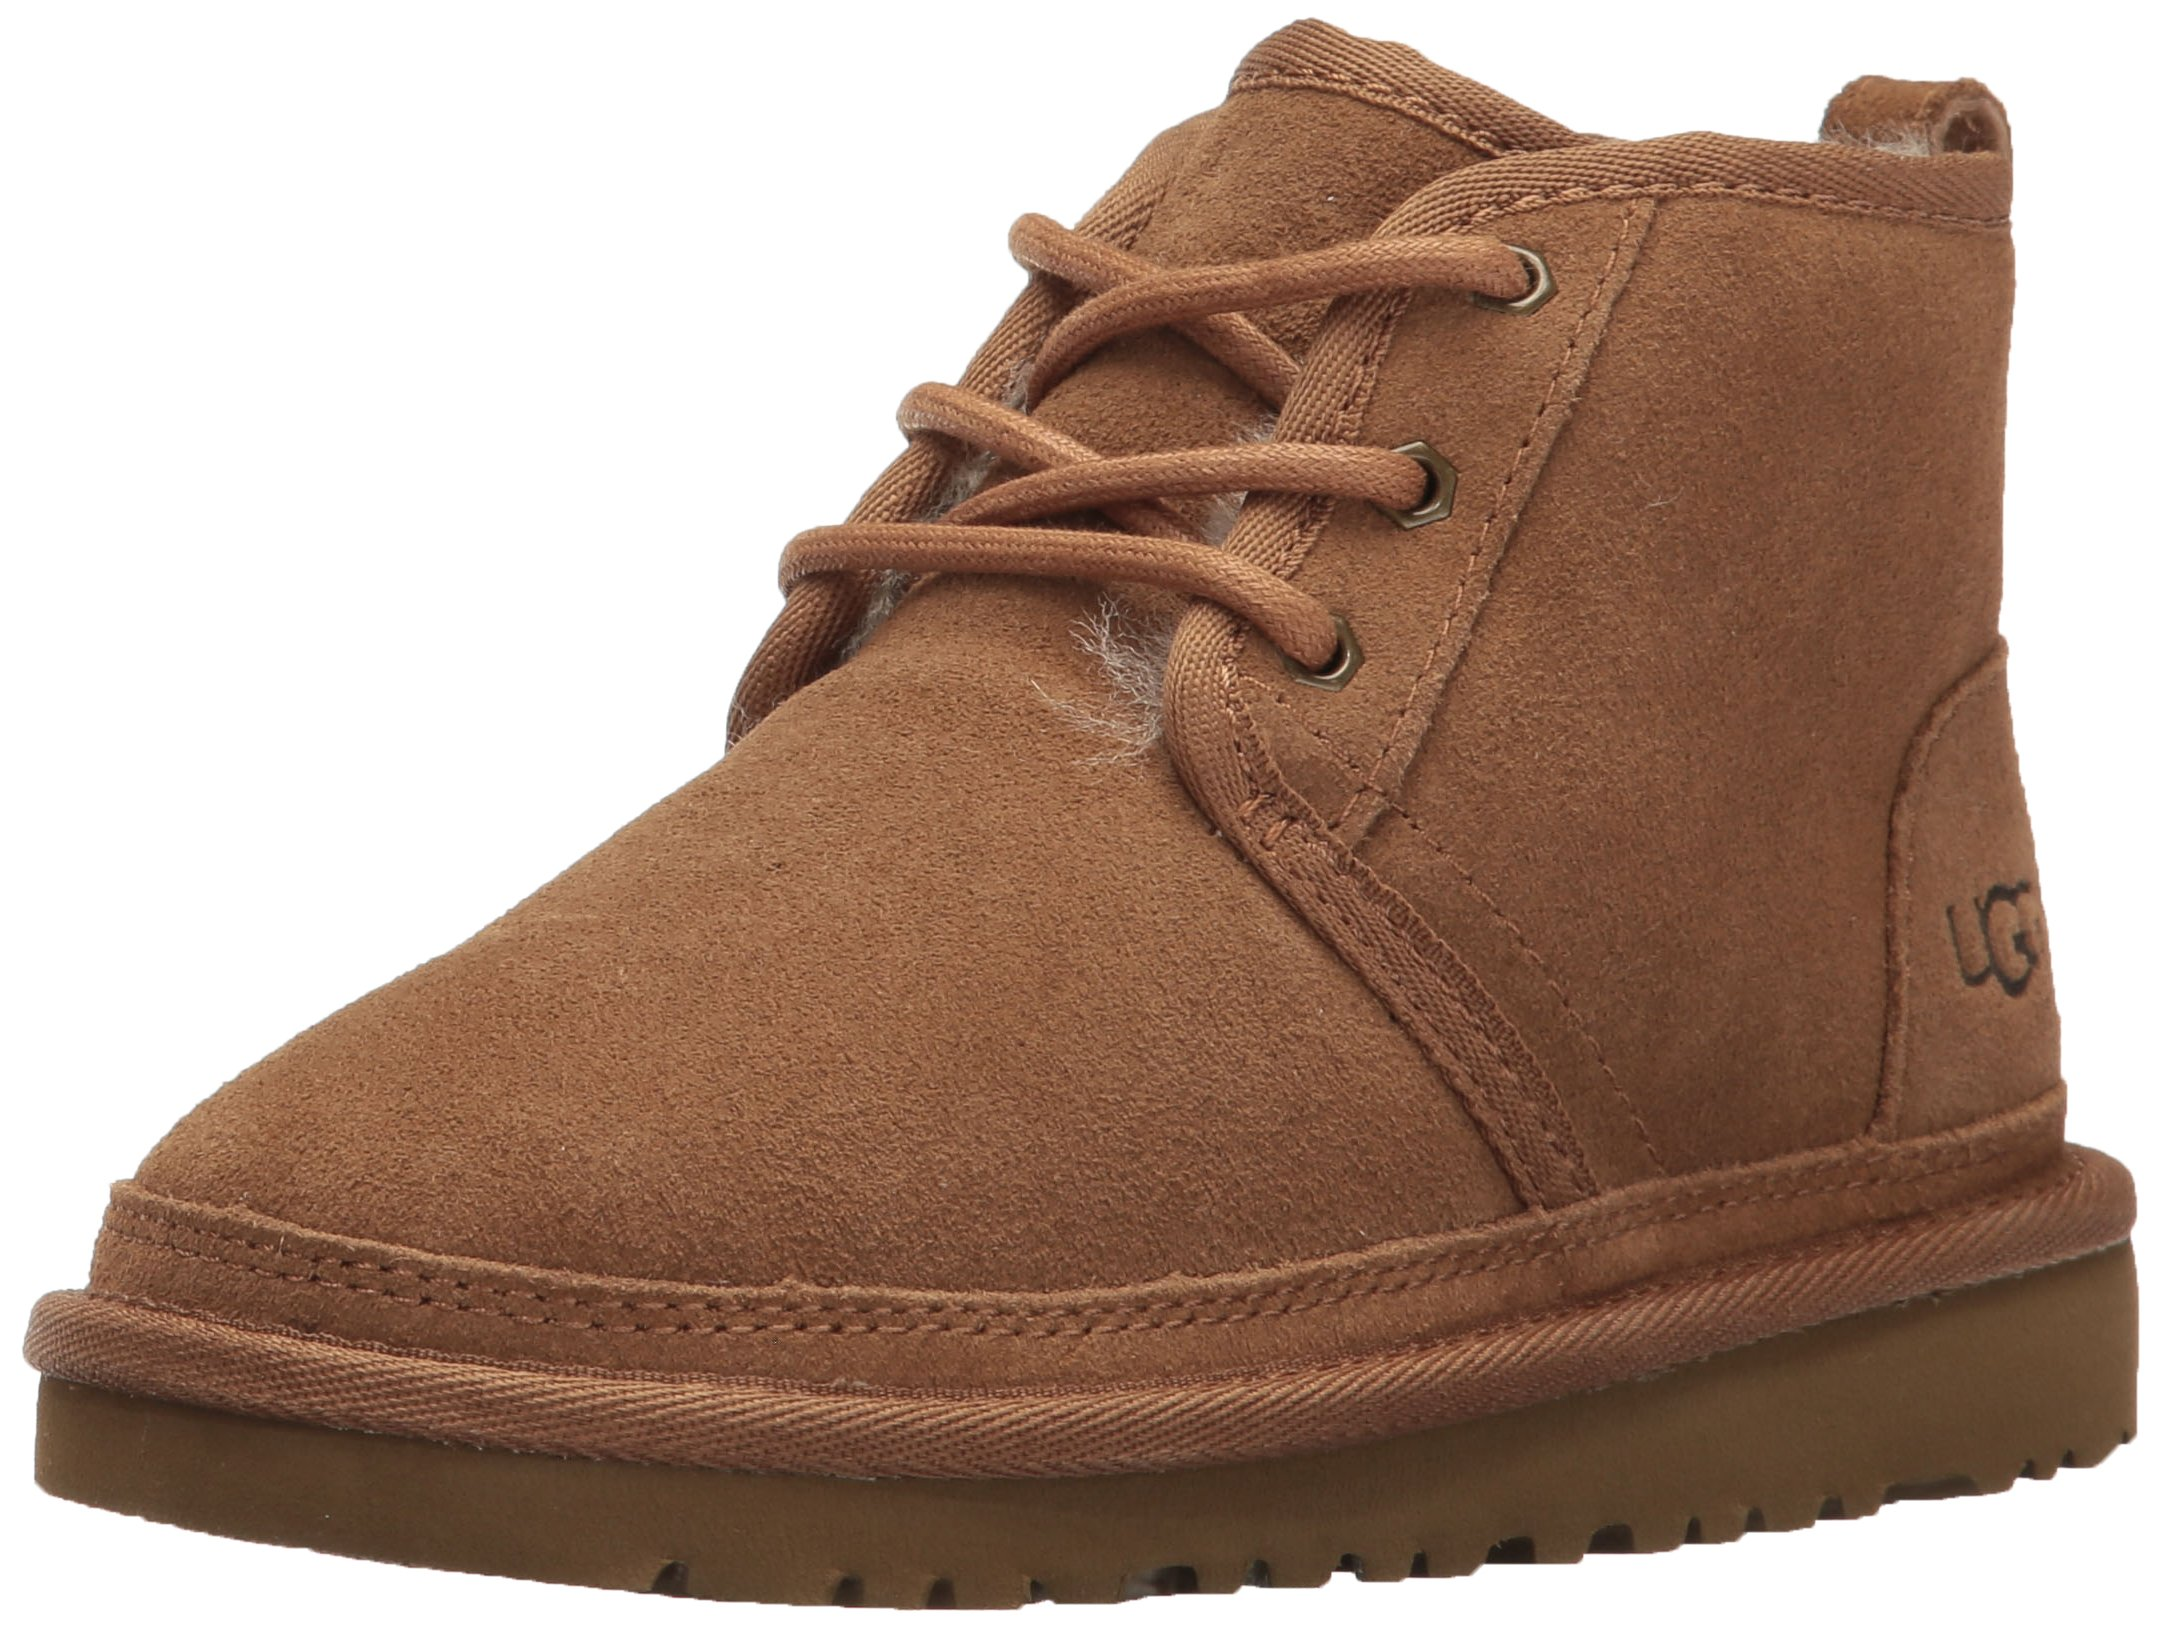 UGG Boys K Neumel Pull-on Boot, Chestnut, 3 M US Little Kid